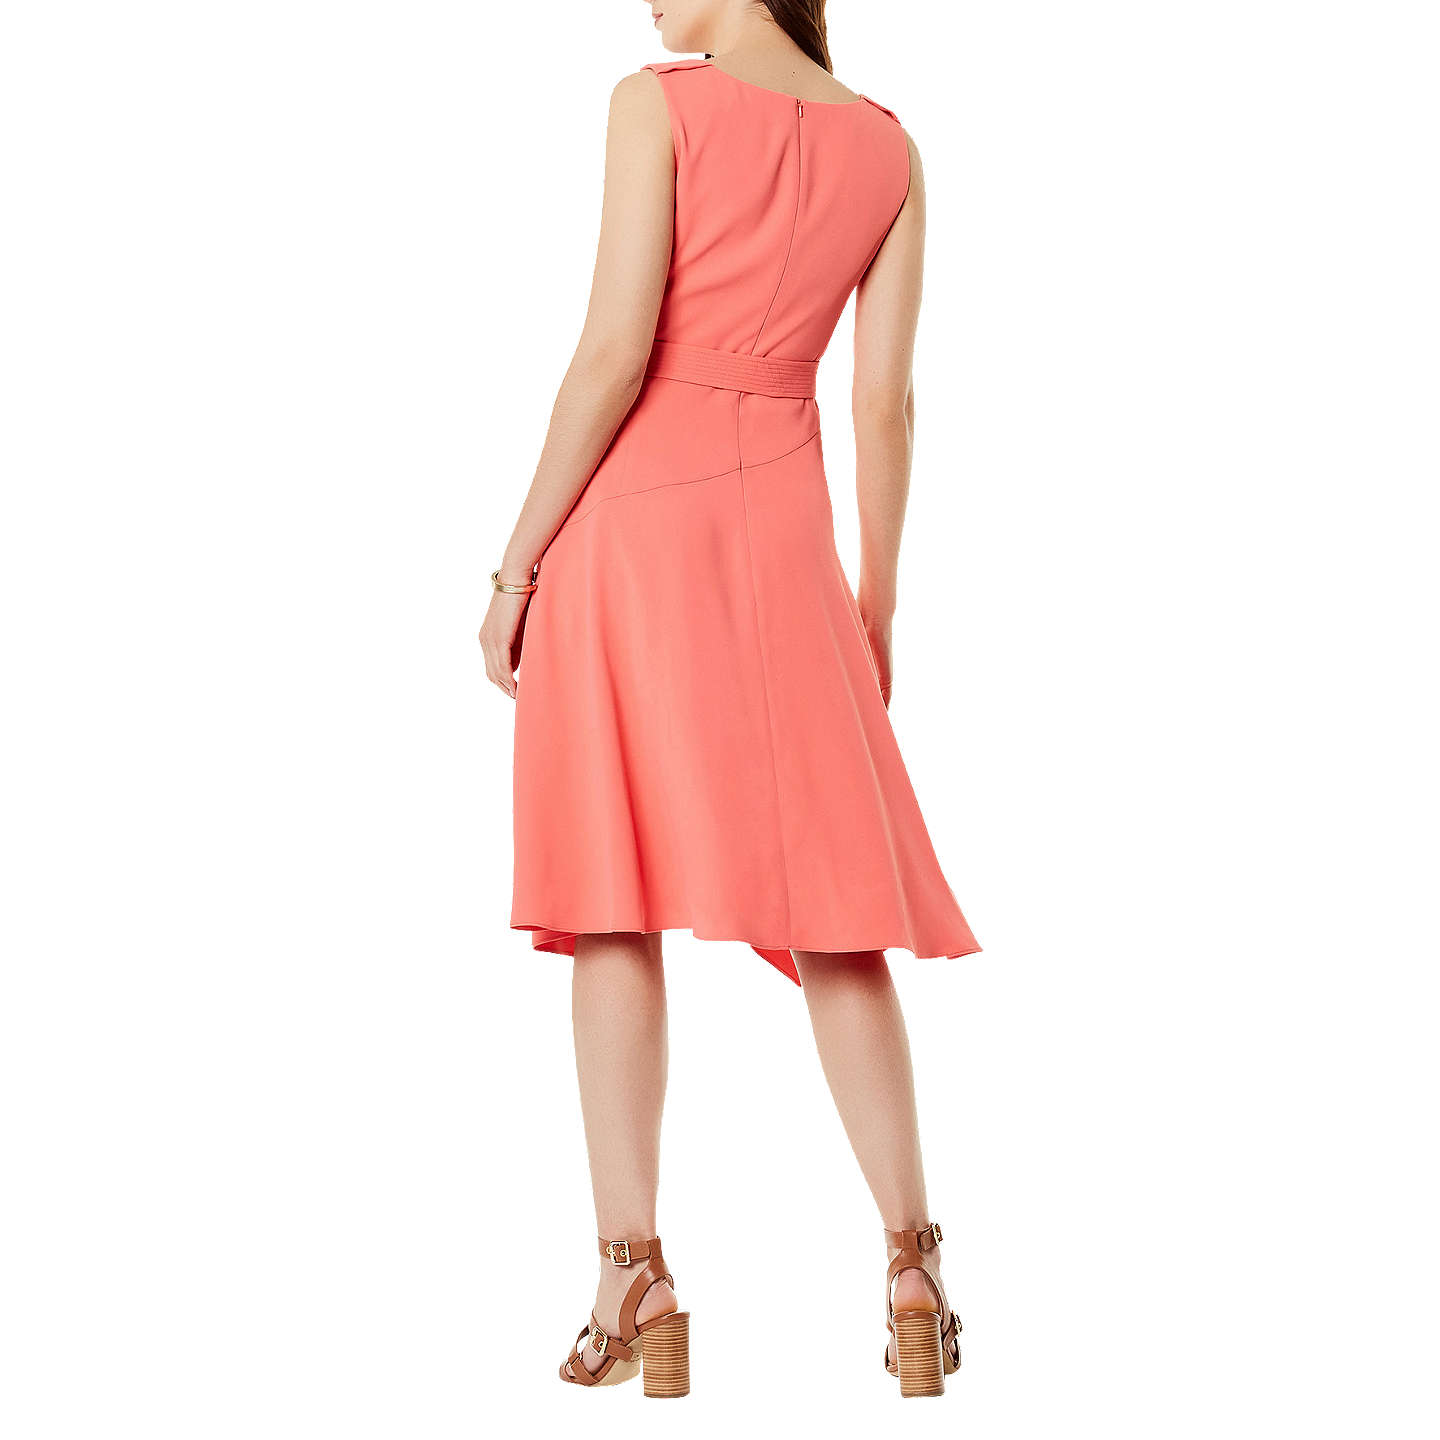 BuyKaren Millen Fluid Day Dress, Coral, 6 Online at johnlewis.com